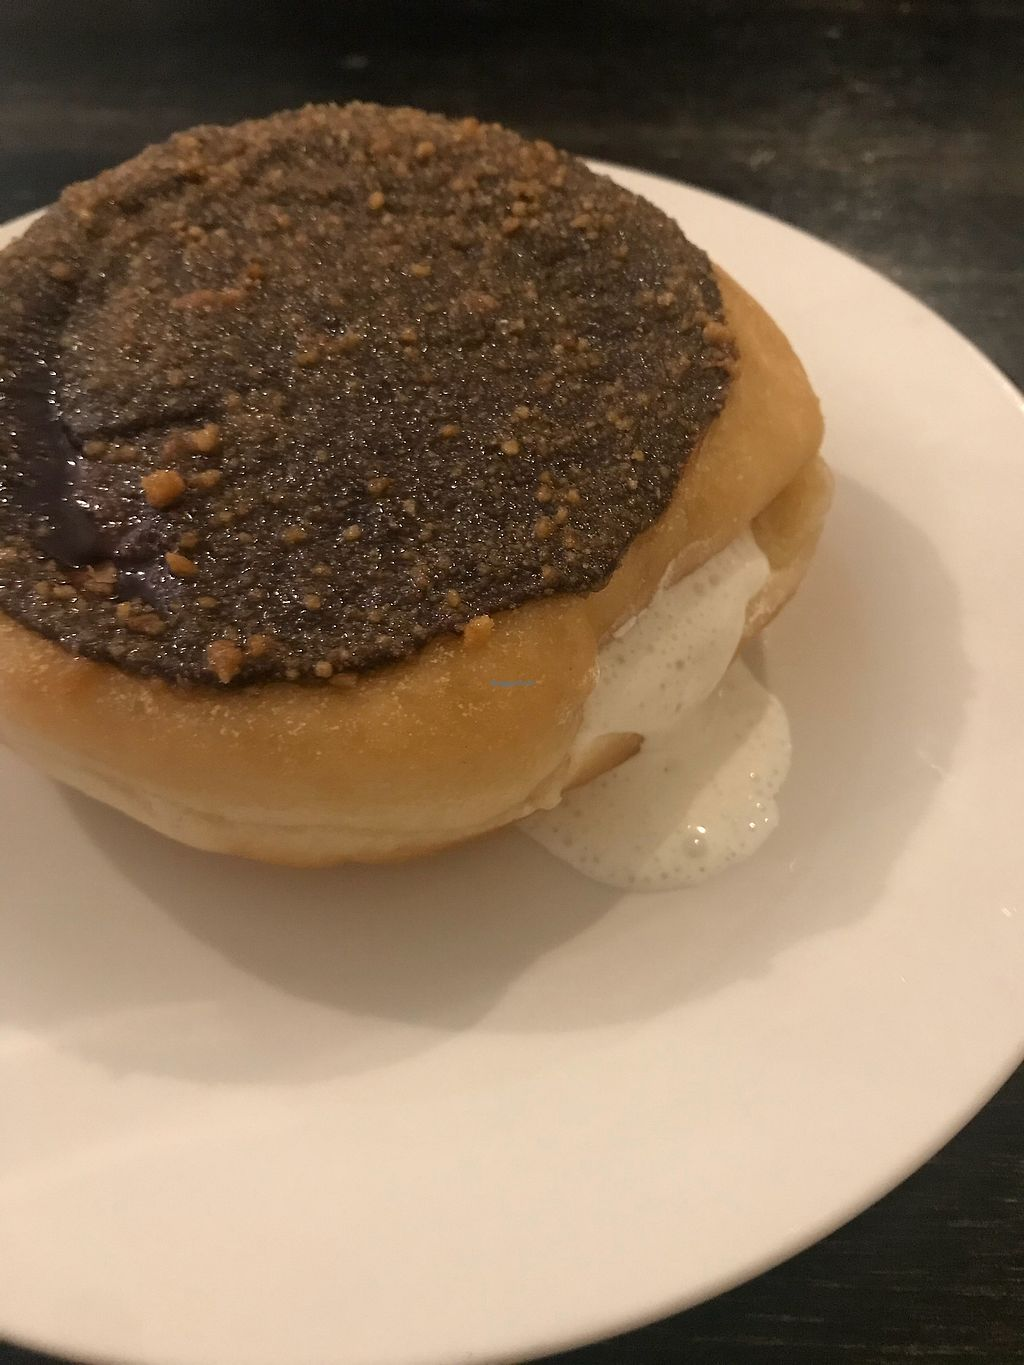 """Photo of Loving Hut - Brooklyn  by <a href=""""/members/profile/HouseofCats"""">HouseofCats</a> <br/>Most delicious S'mores donut ever.  <br/> April 2, 2018  - <a href='/contact/abuse/image/40374/379652'>Report</a>"""